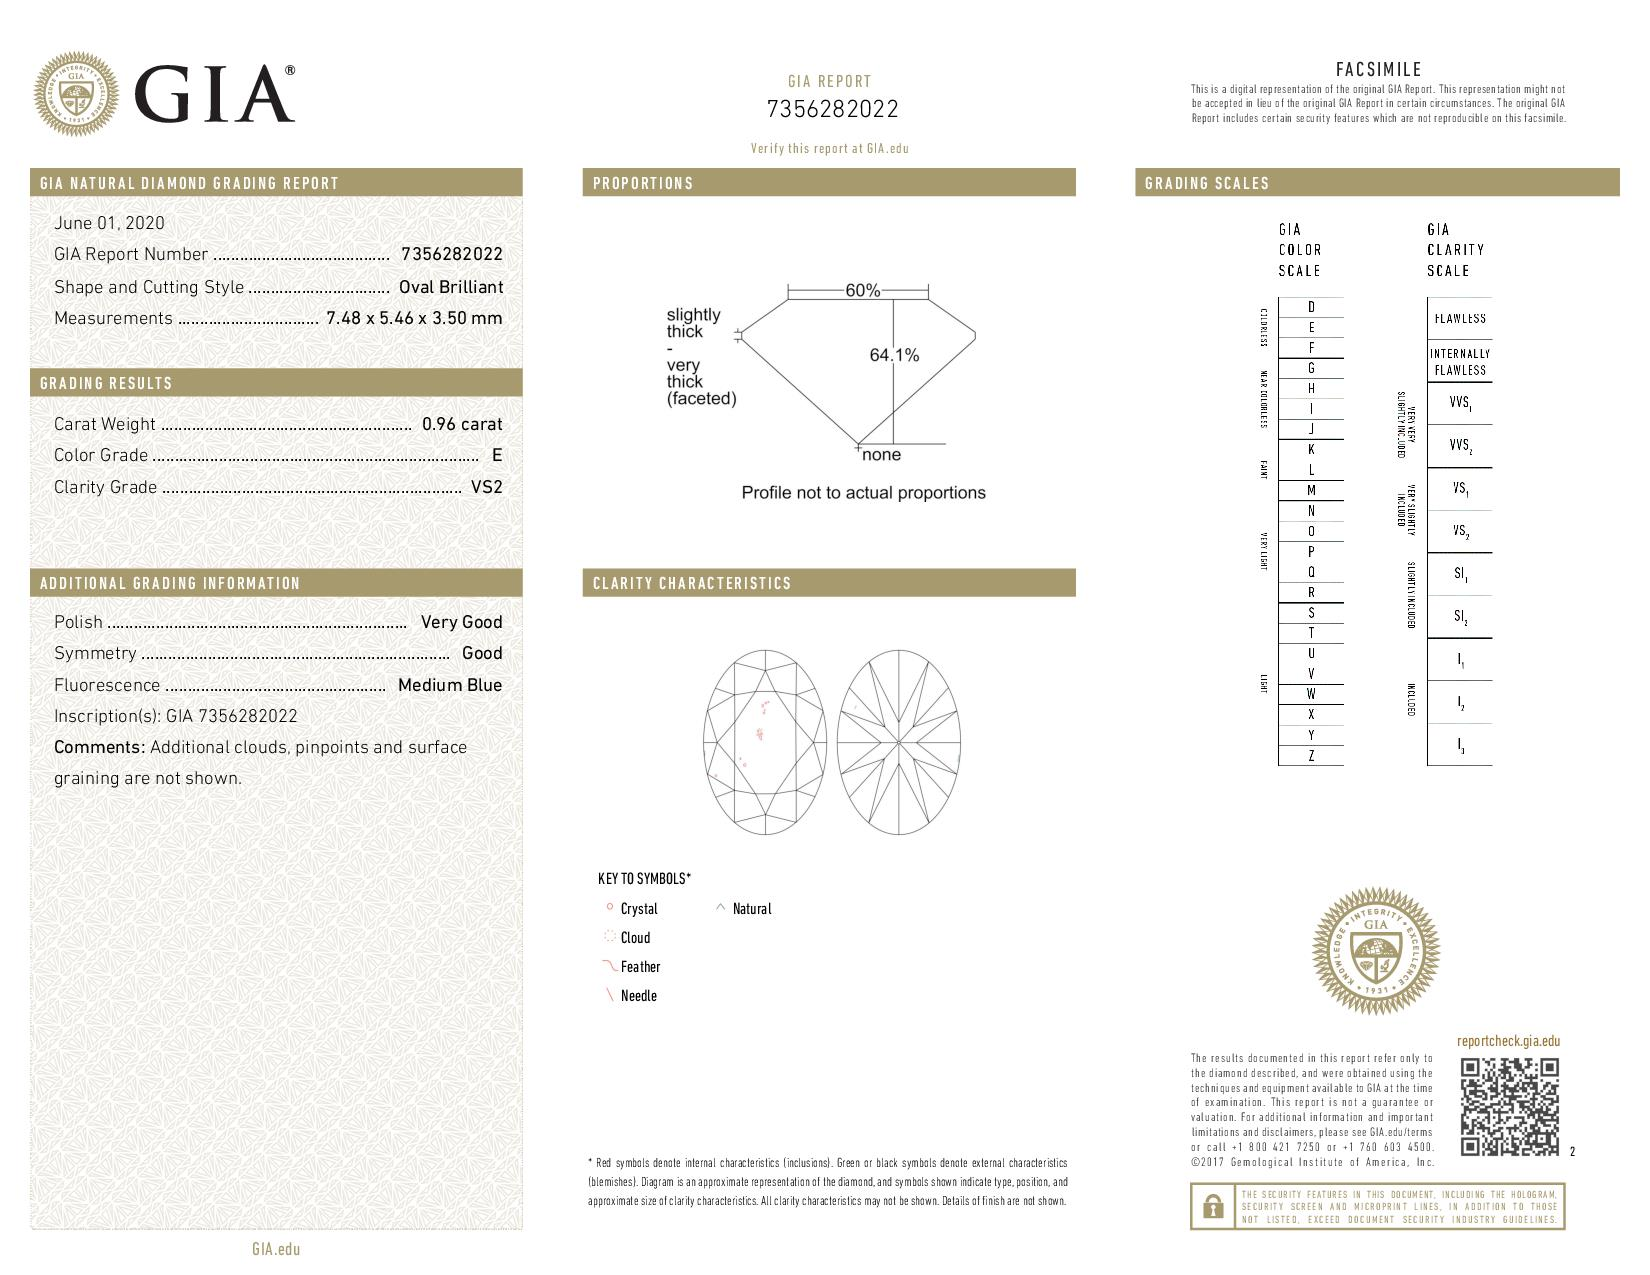 This is a 0.96 carat oval shape, E color, VS2 clarity natural diamond accompanied by a GIA grading report.